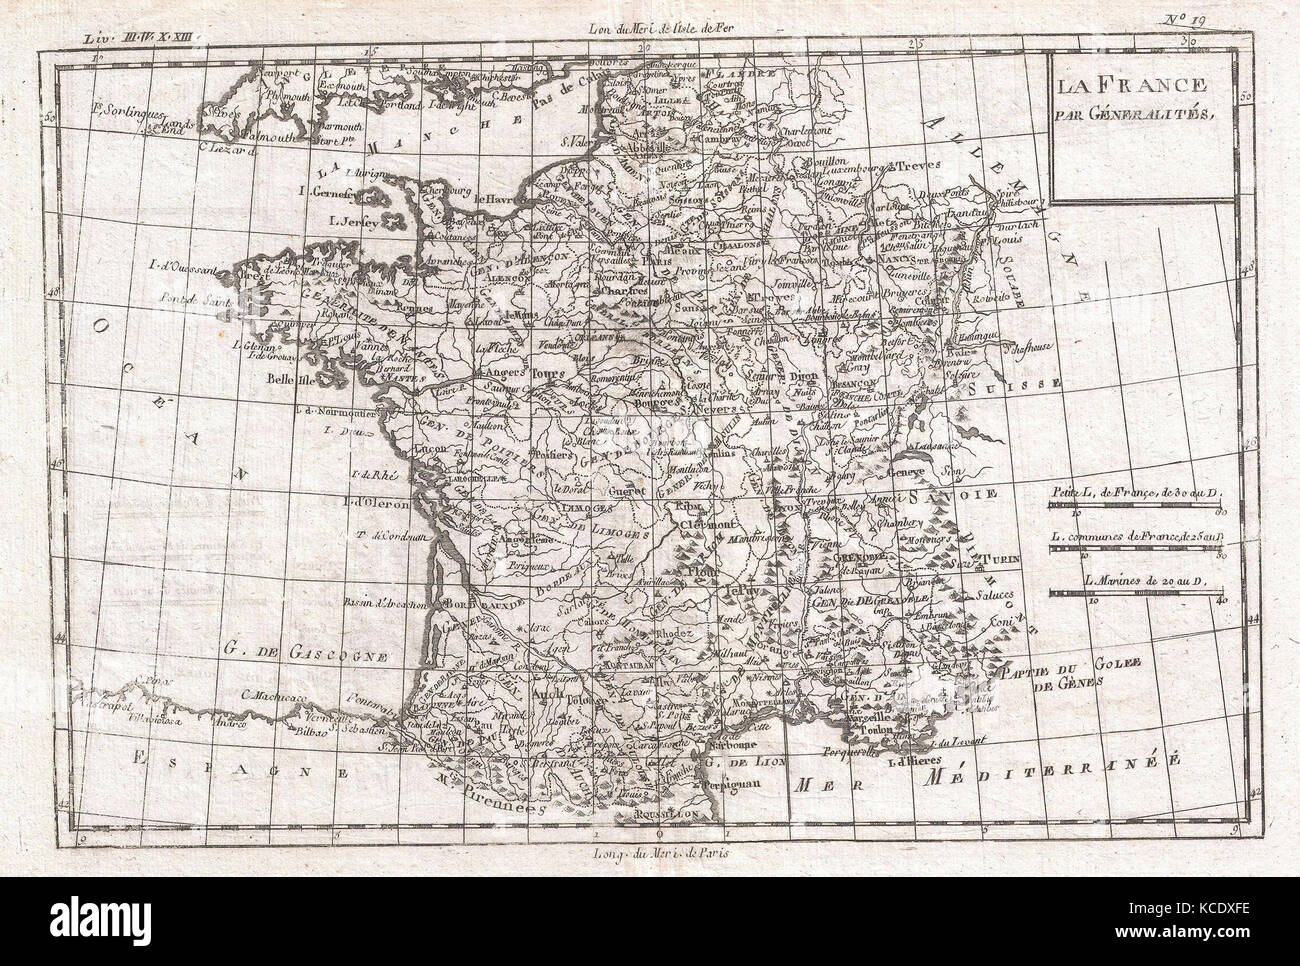 1780, Raynal and Bonne Map of France, Rigobert Bonne 1727 – 1794 - Stock Image